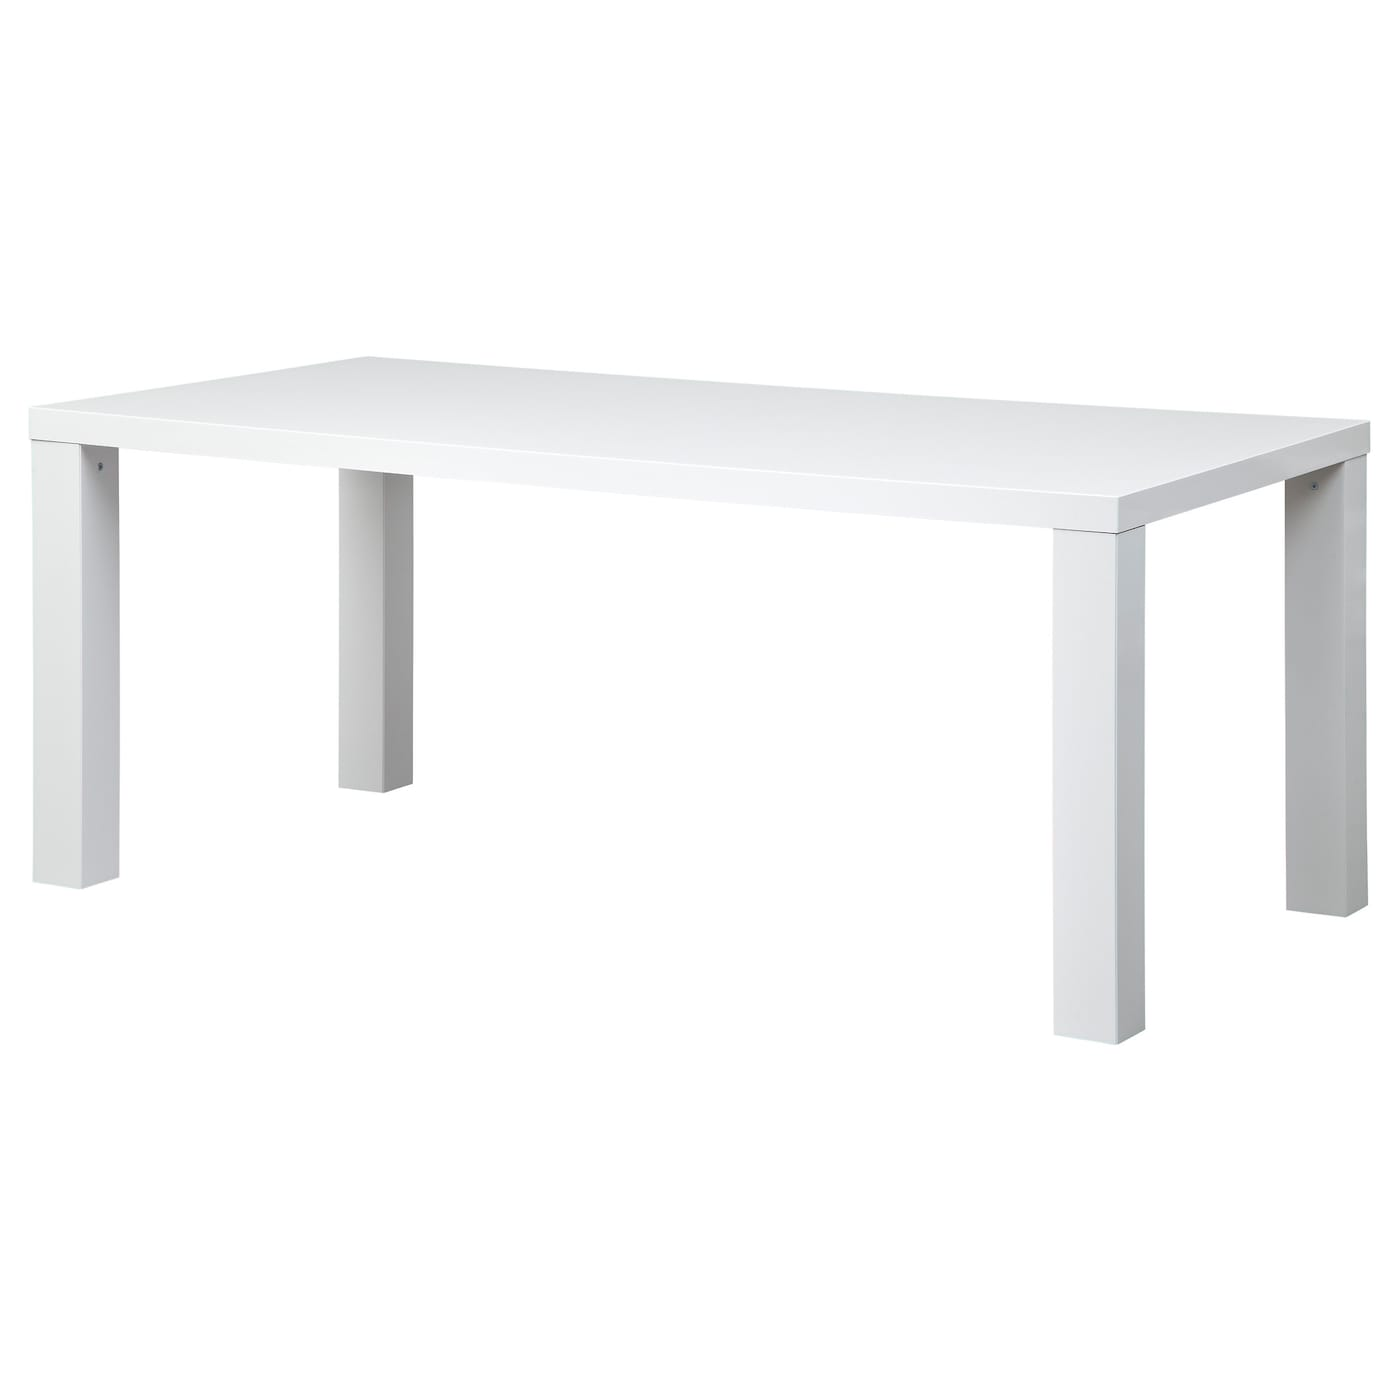 IKEA TORESUND table